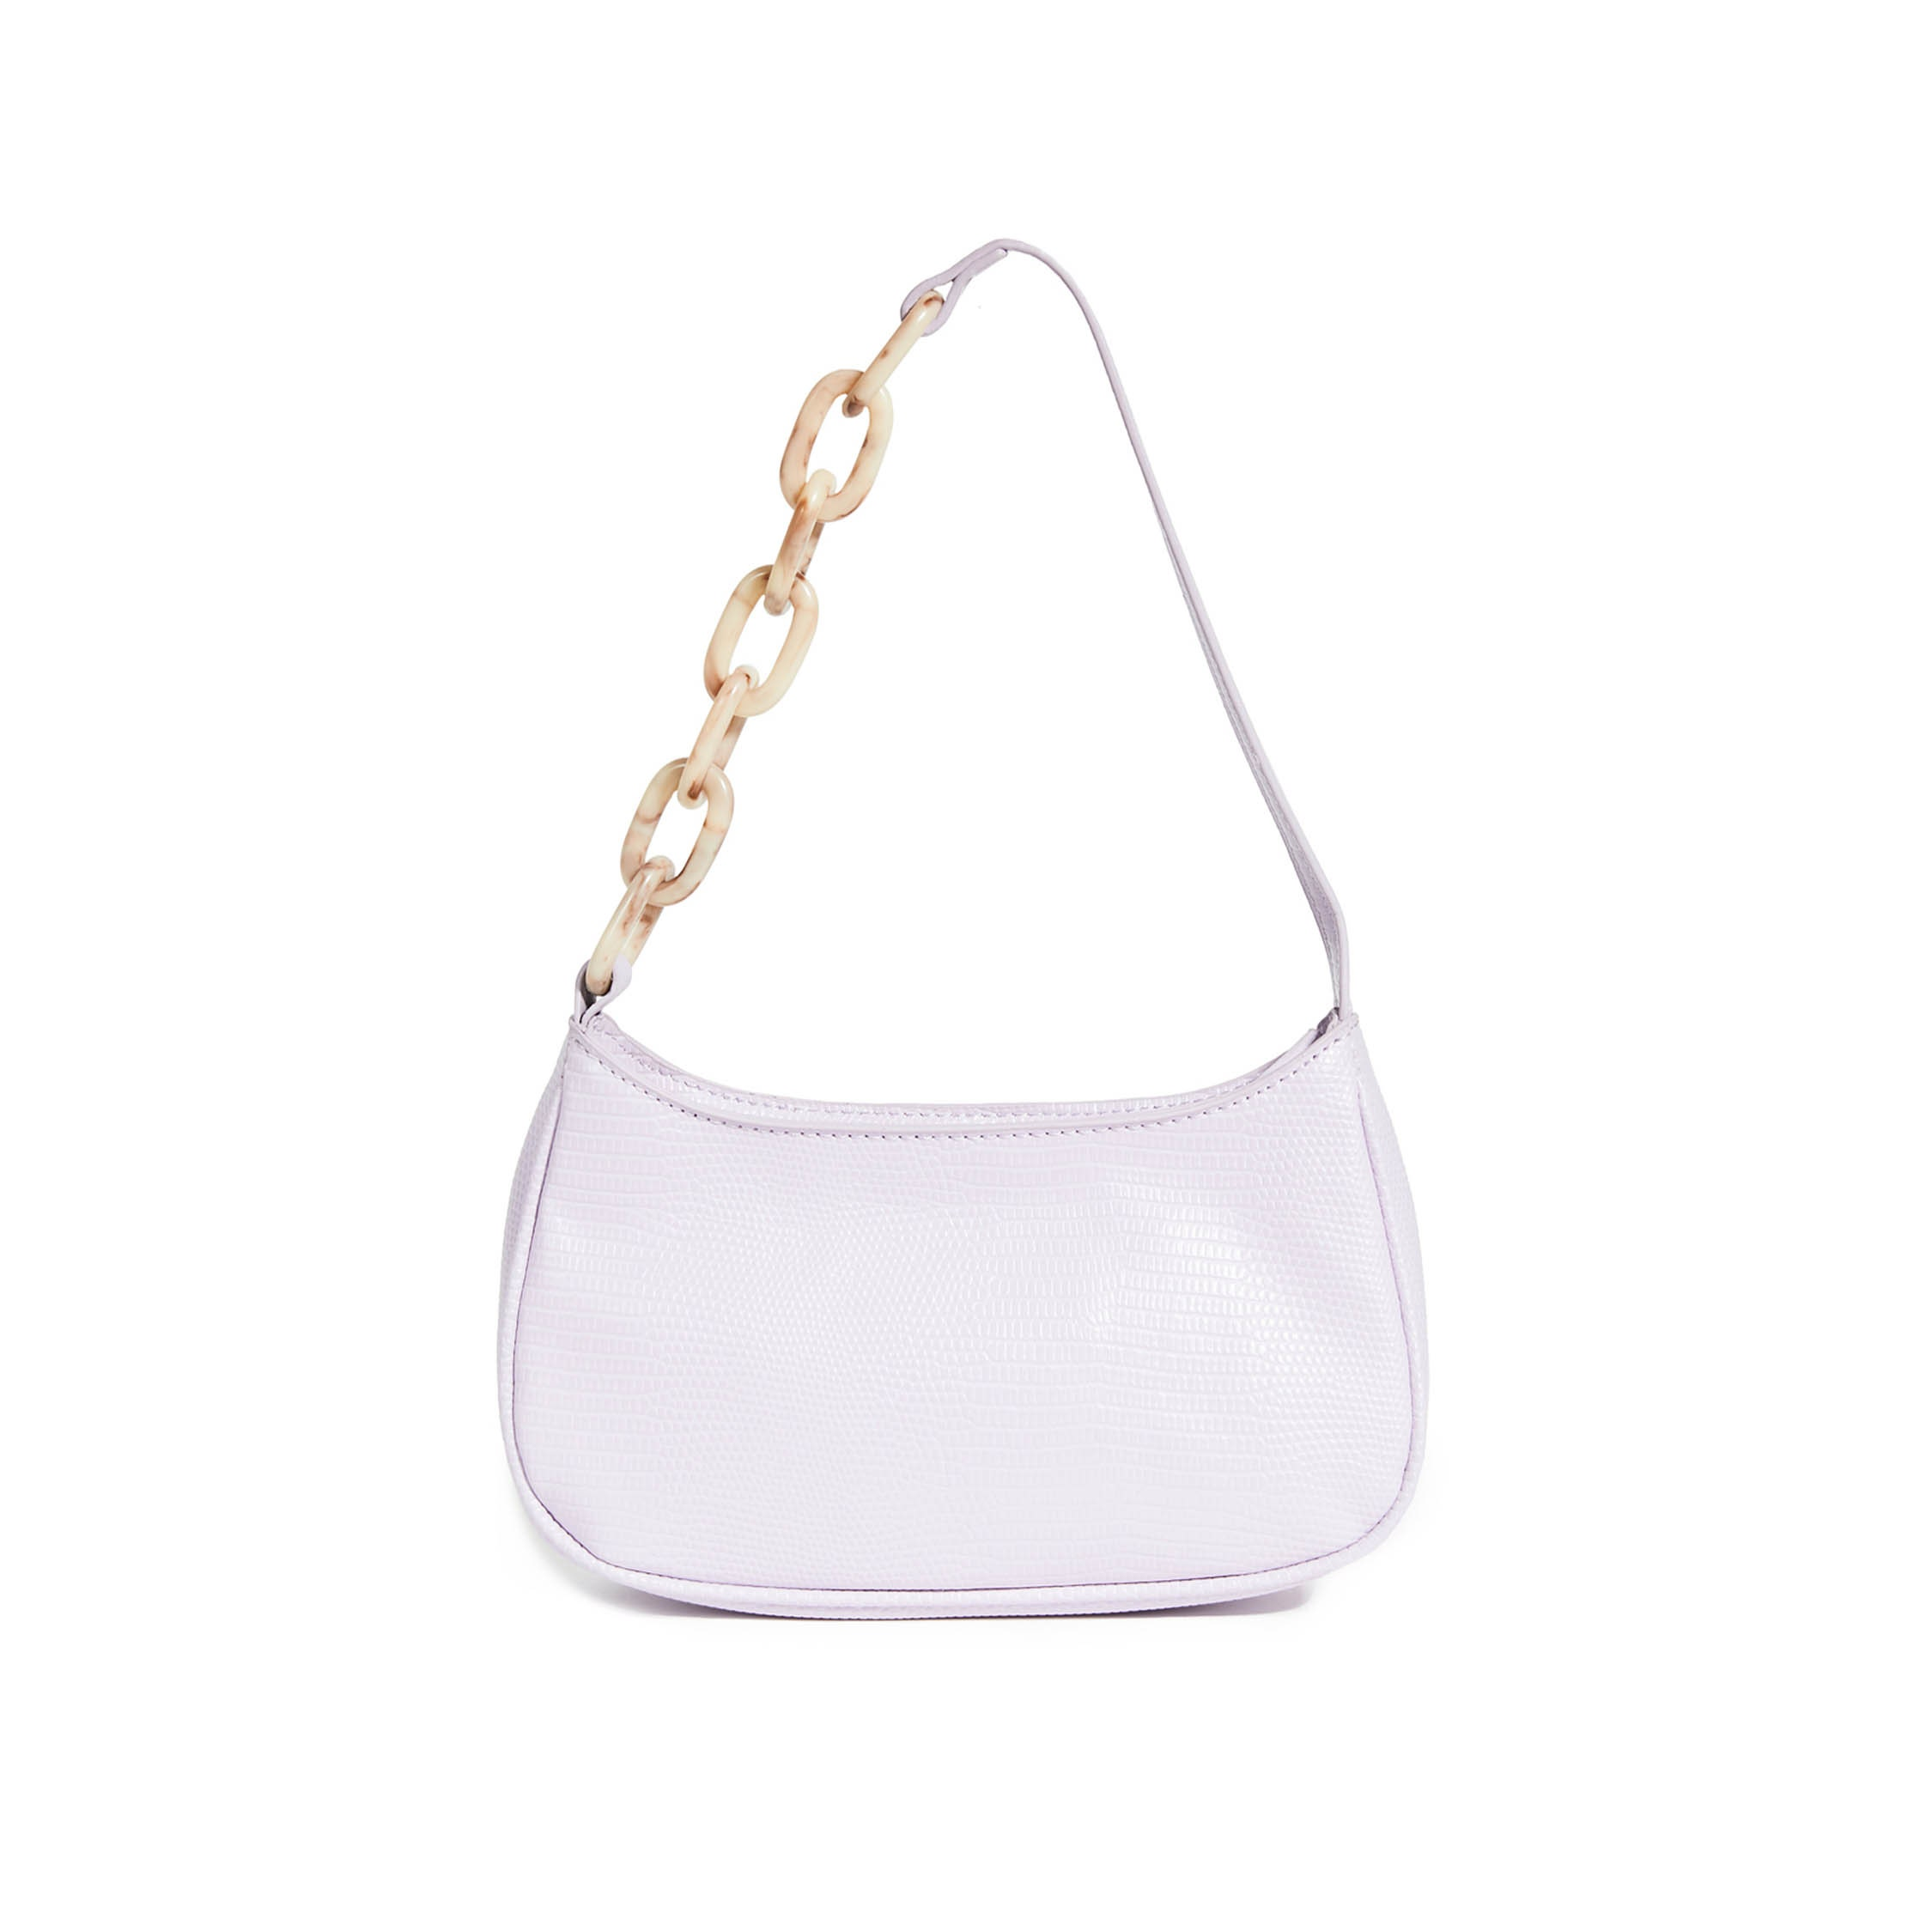 lilac baguette bag with chain detail